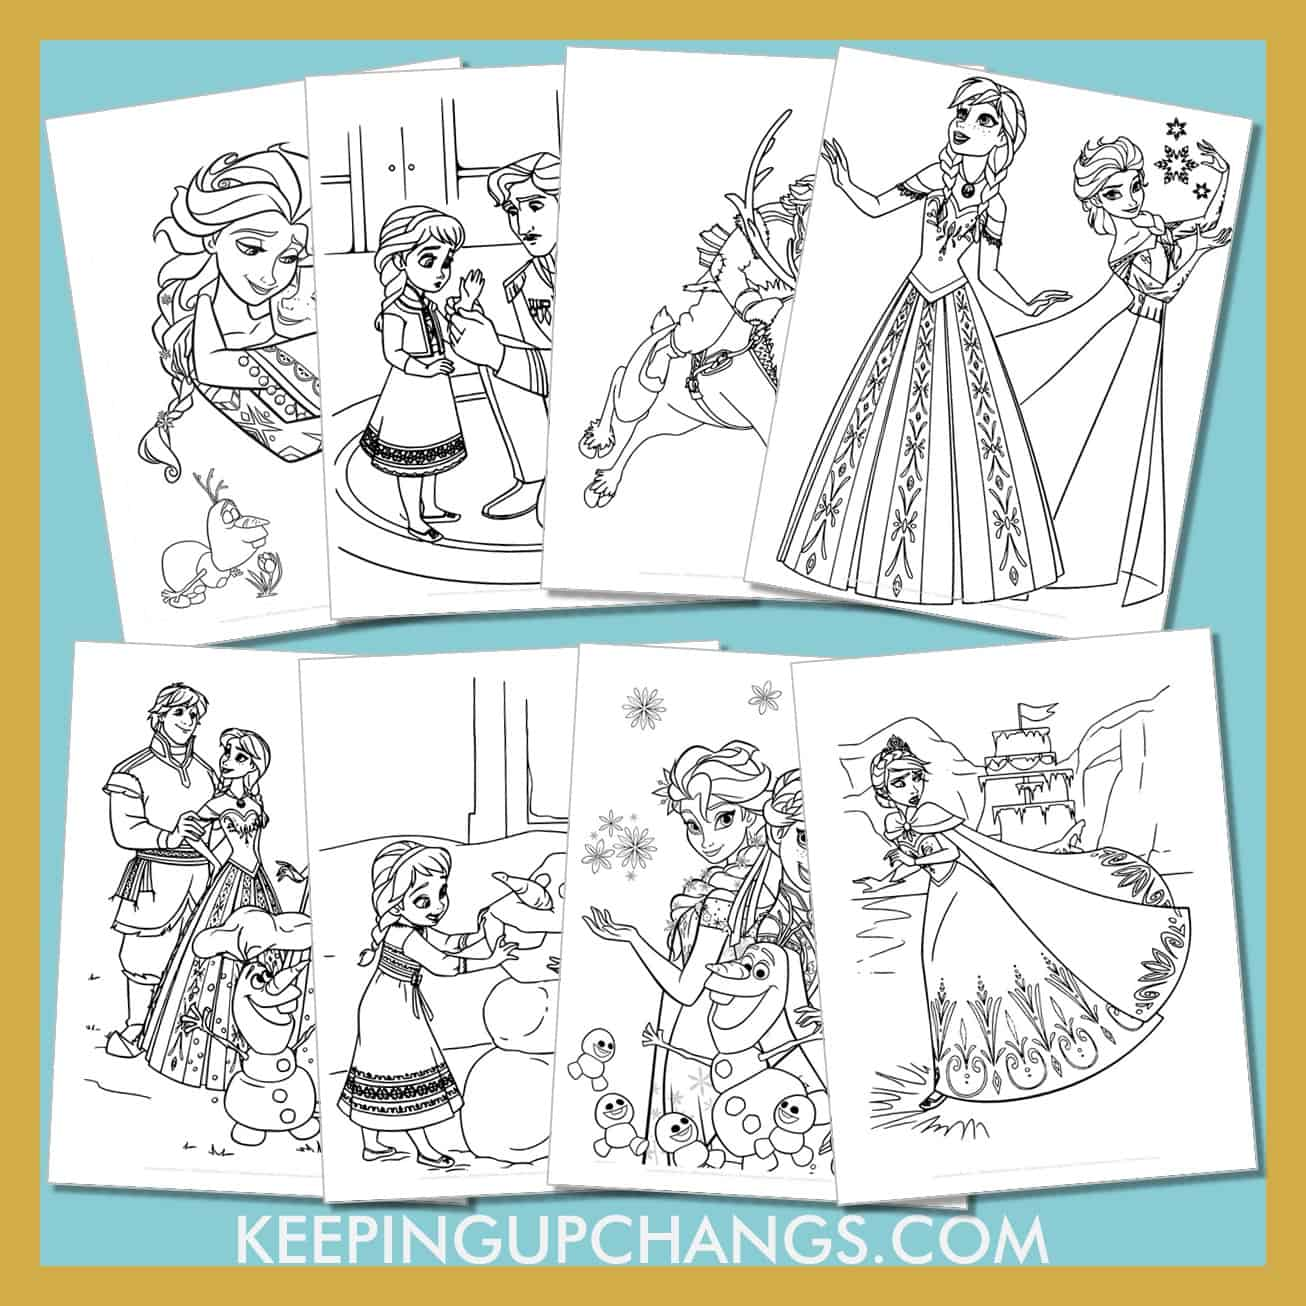 frozen colouring sheets including cute disney princess ice queen elsa, anna, kristoff, olaf, sven and more.